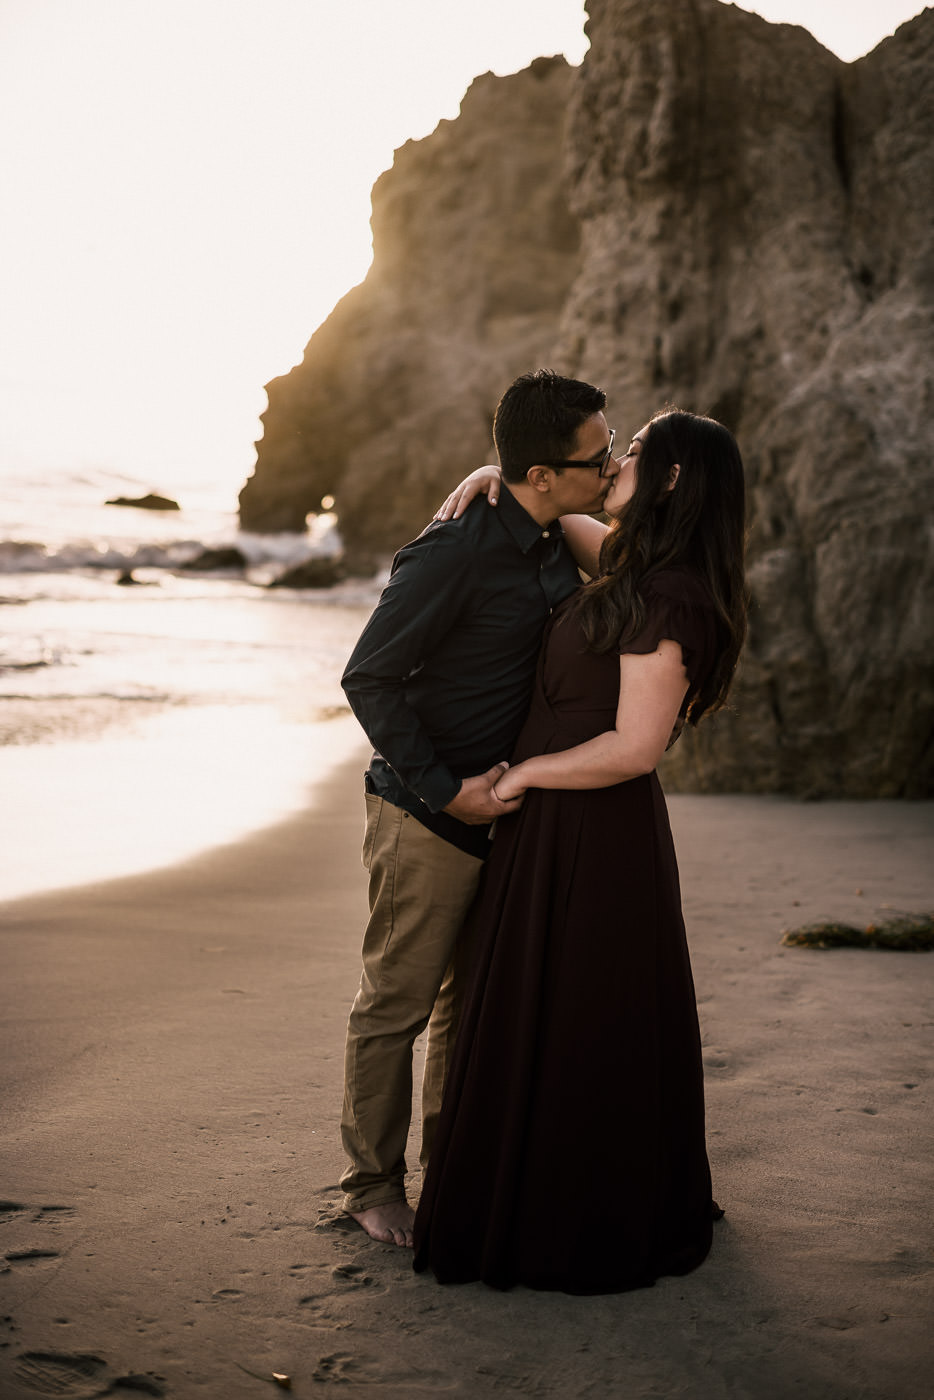 Couple has a passionate kiss in the cool sand of El Matador state beach in Malibu at sunset.